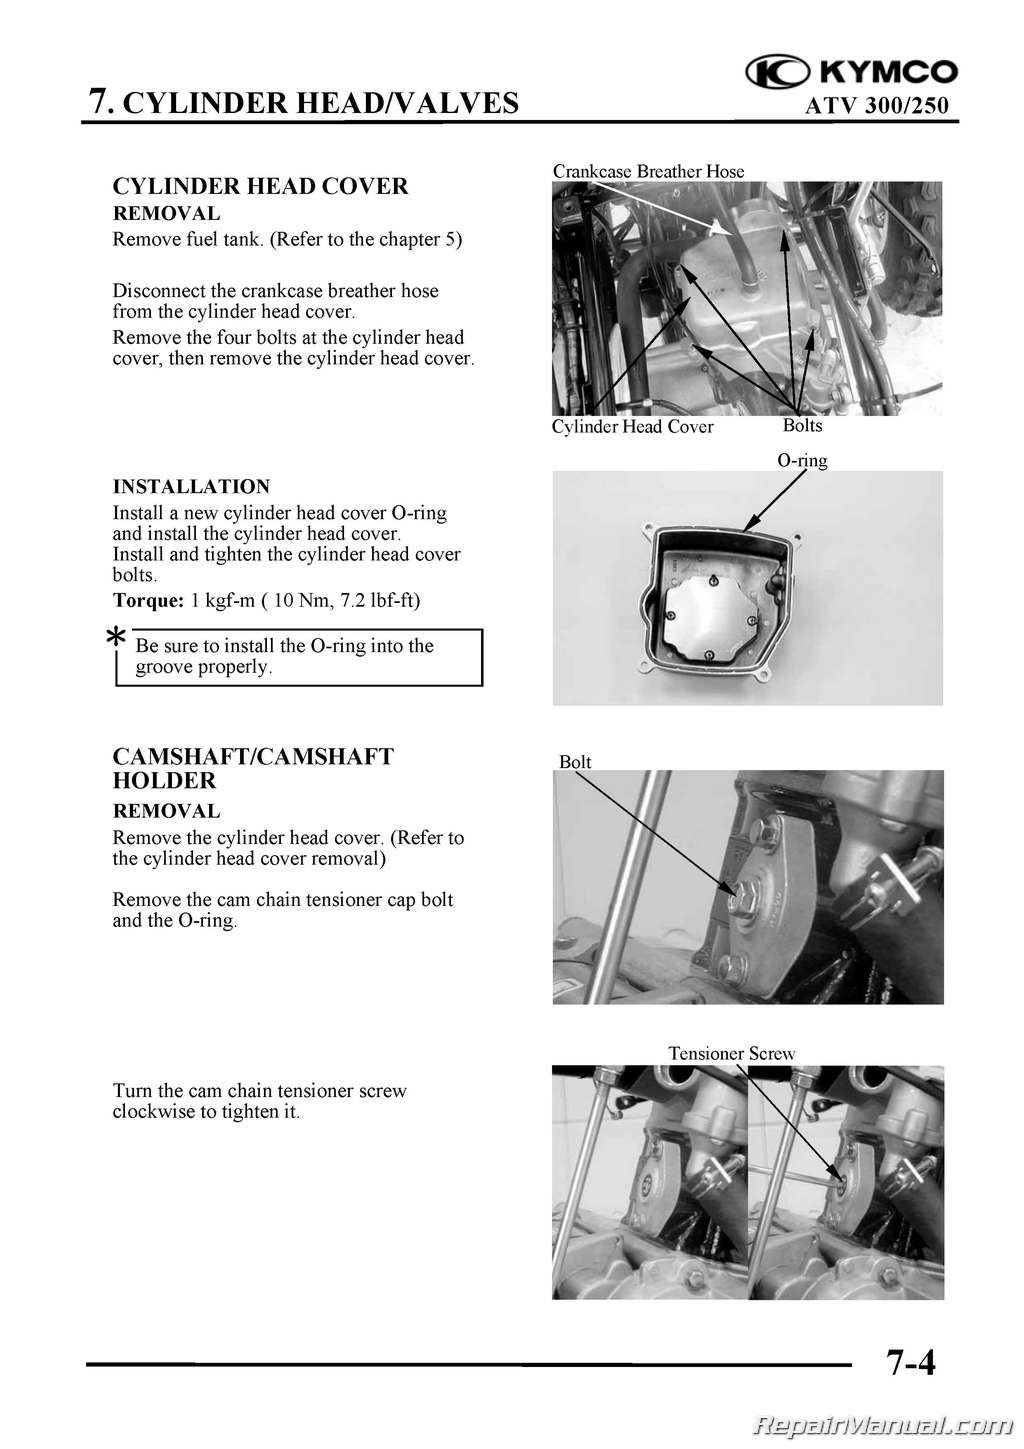 Pages-from-Mongoose-300-Service-Manual-3_Page_2 Kymco Wiring Diagram on kawasaki wiring diagram, garelli wiring diagram, kreidler wiring diagram, ignition coil wiring diagram, dodge wiring diagram, honda wiring diagram, cf moto wiring diagram, gy6 cdi wiring diagram, kasea wiring diagram, norton wiring diagram, generic wiring diagram, husaberg wiring diagram, asus wiring diagram, beta wiring diagram, benq wiring diagram, ajs wiring diagram, tomos wiring diagram, evinrude wiring diagram, bajaj wiring diagram, smc wiring diagram,